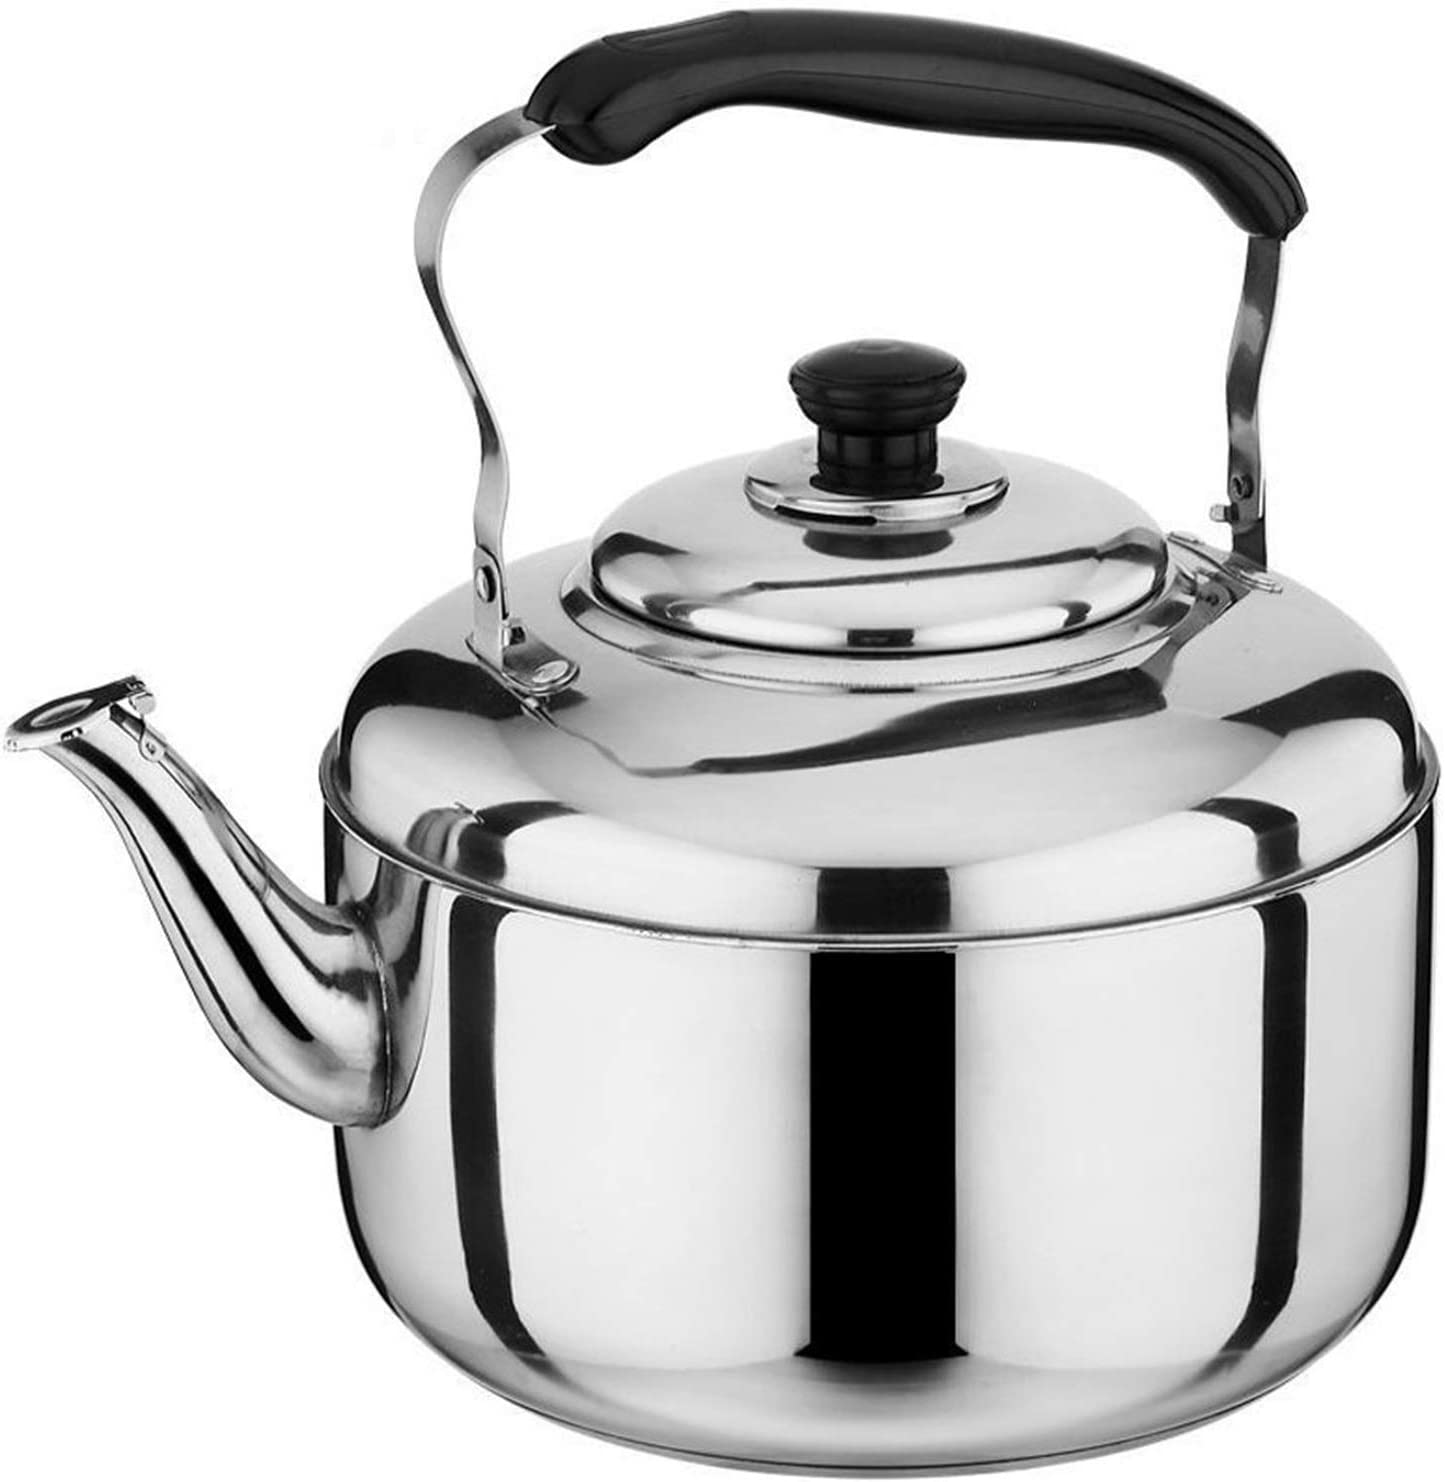 Seamless Tea Kettle for Stove Larg New color Whistling Stainless High order Top Steel